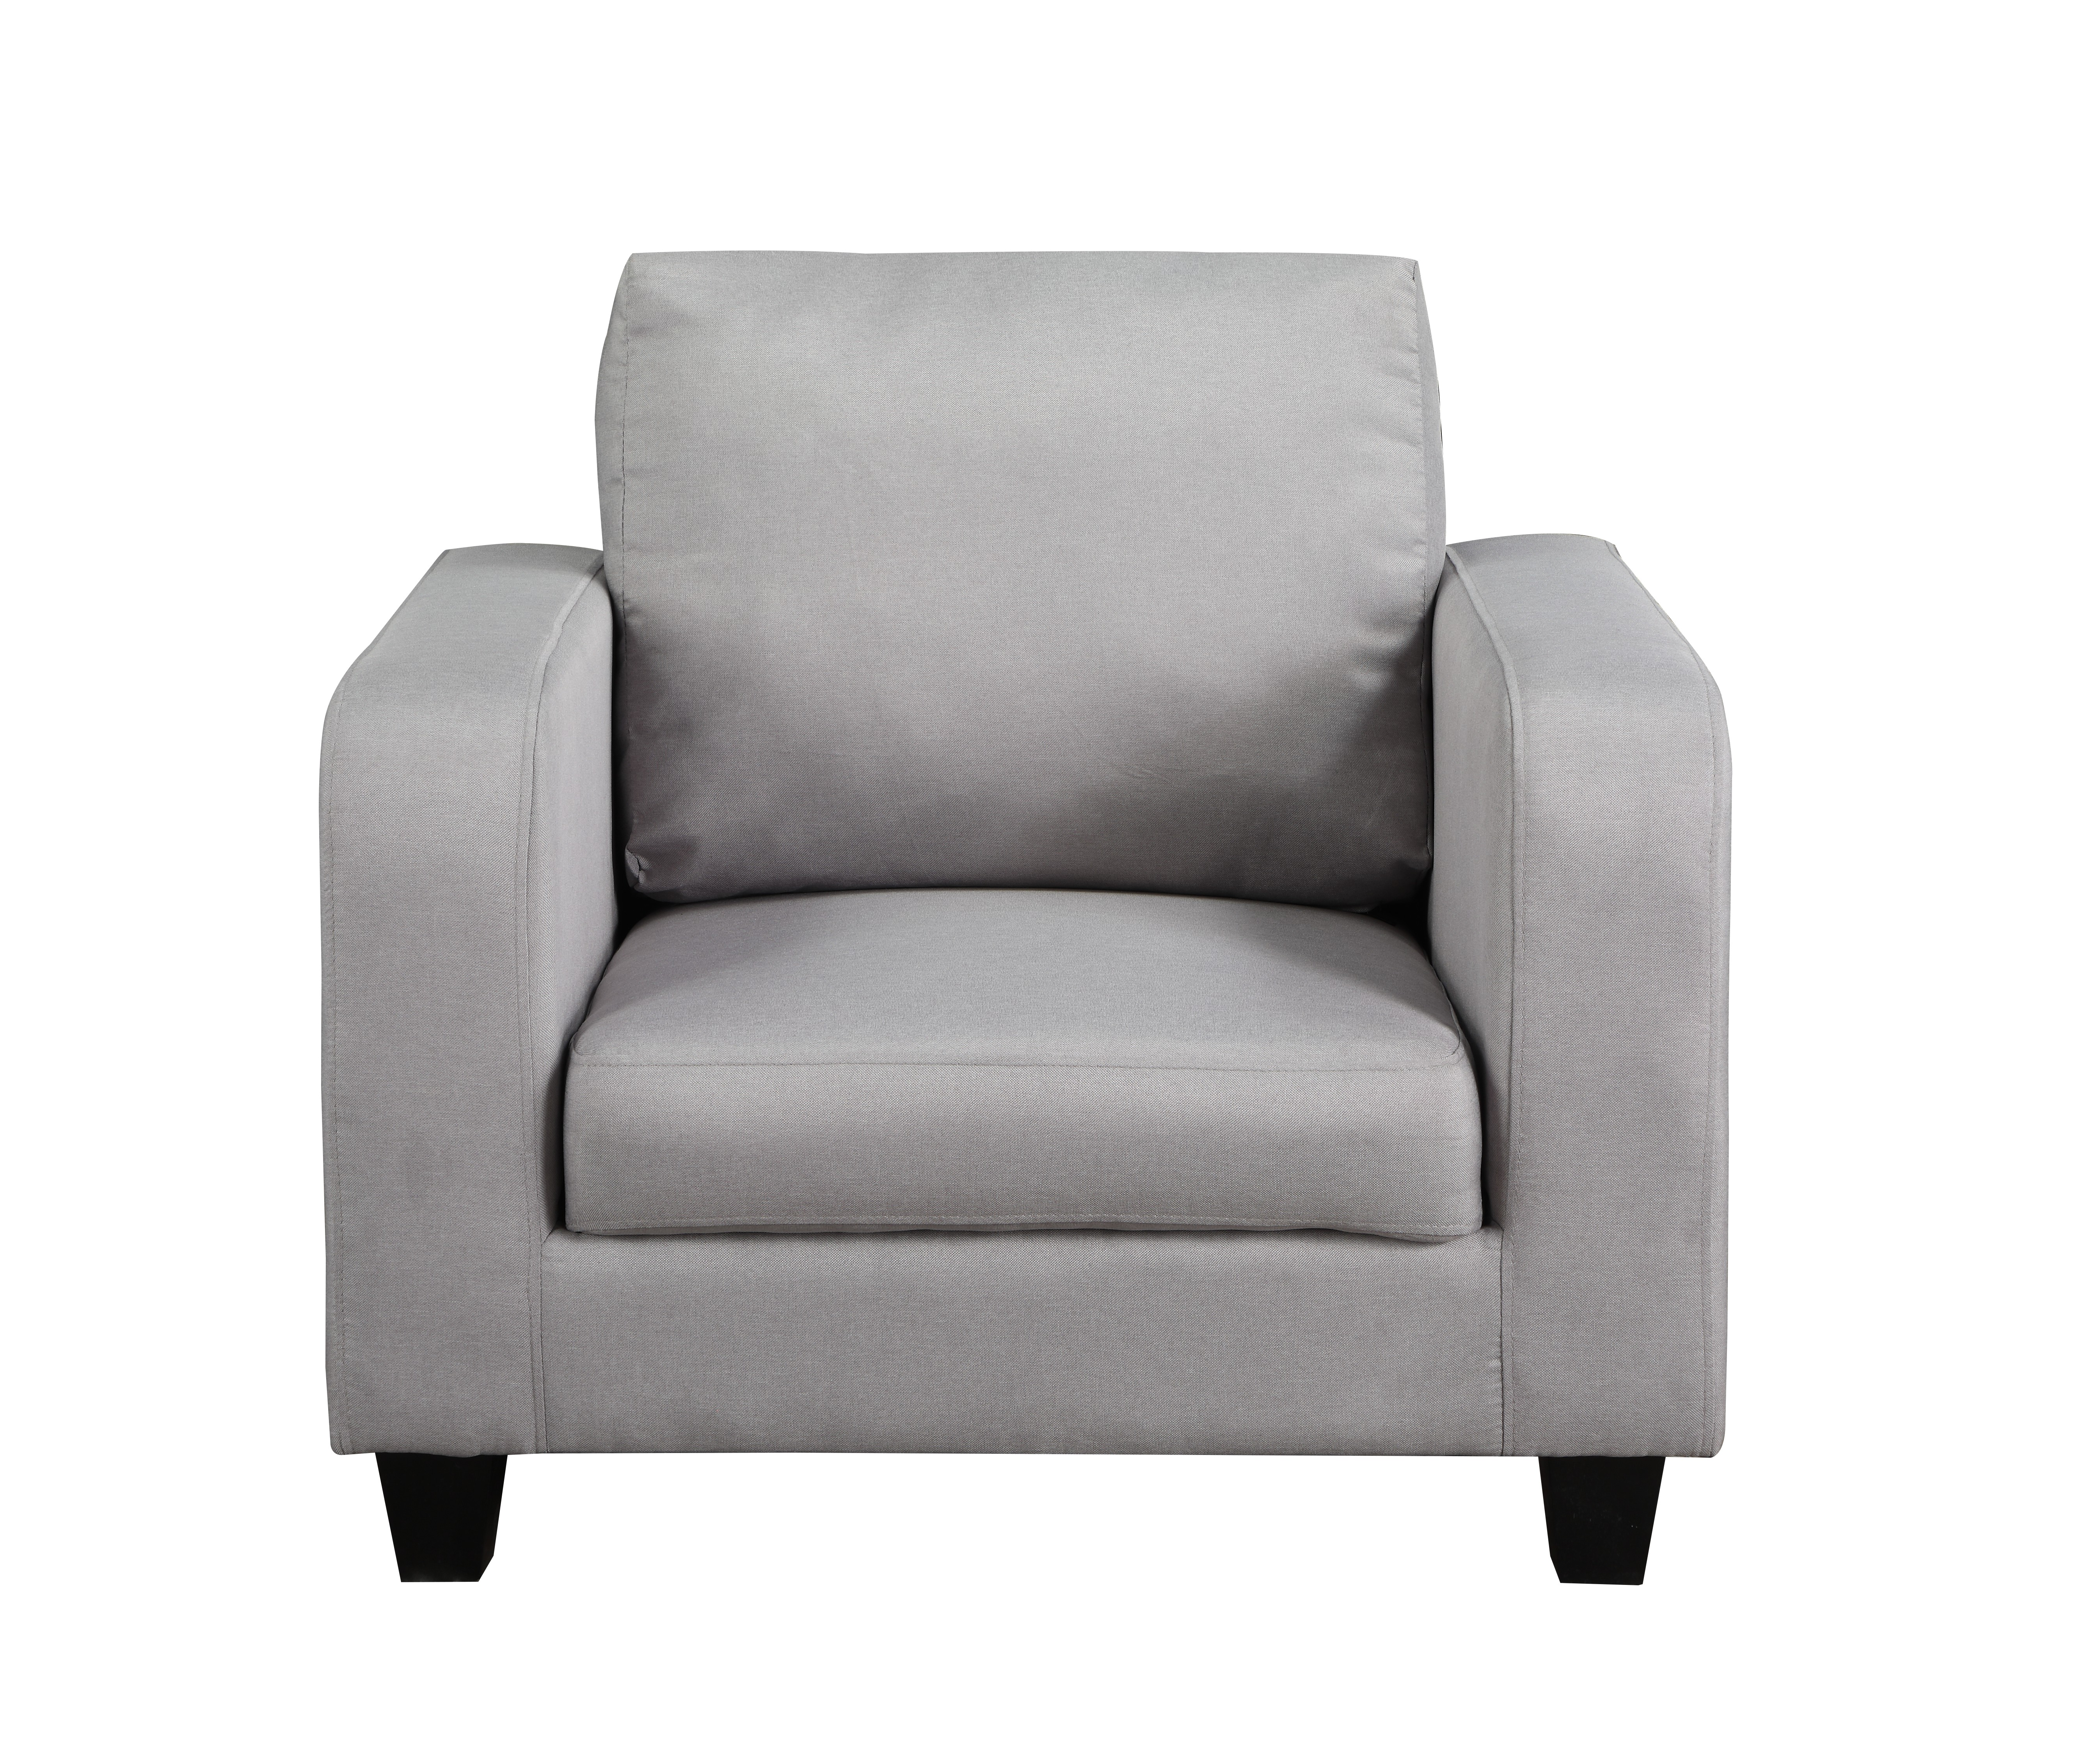 Chair In A Box Grey Fabric